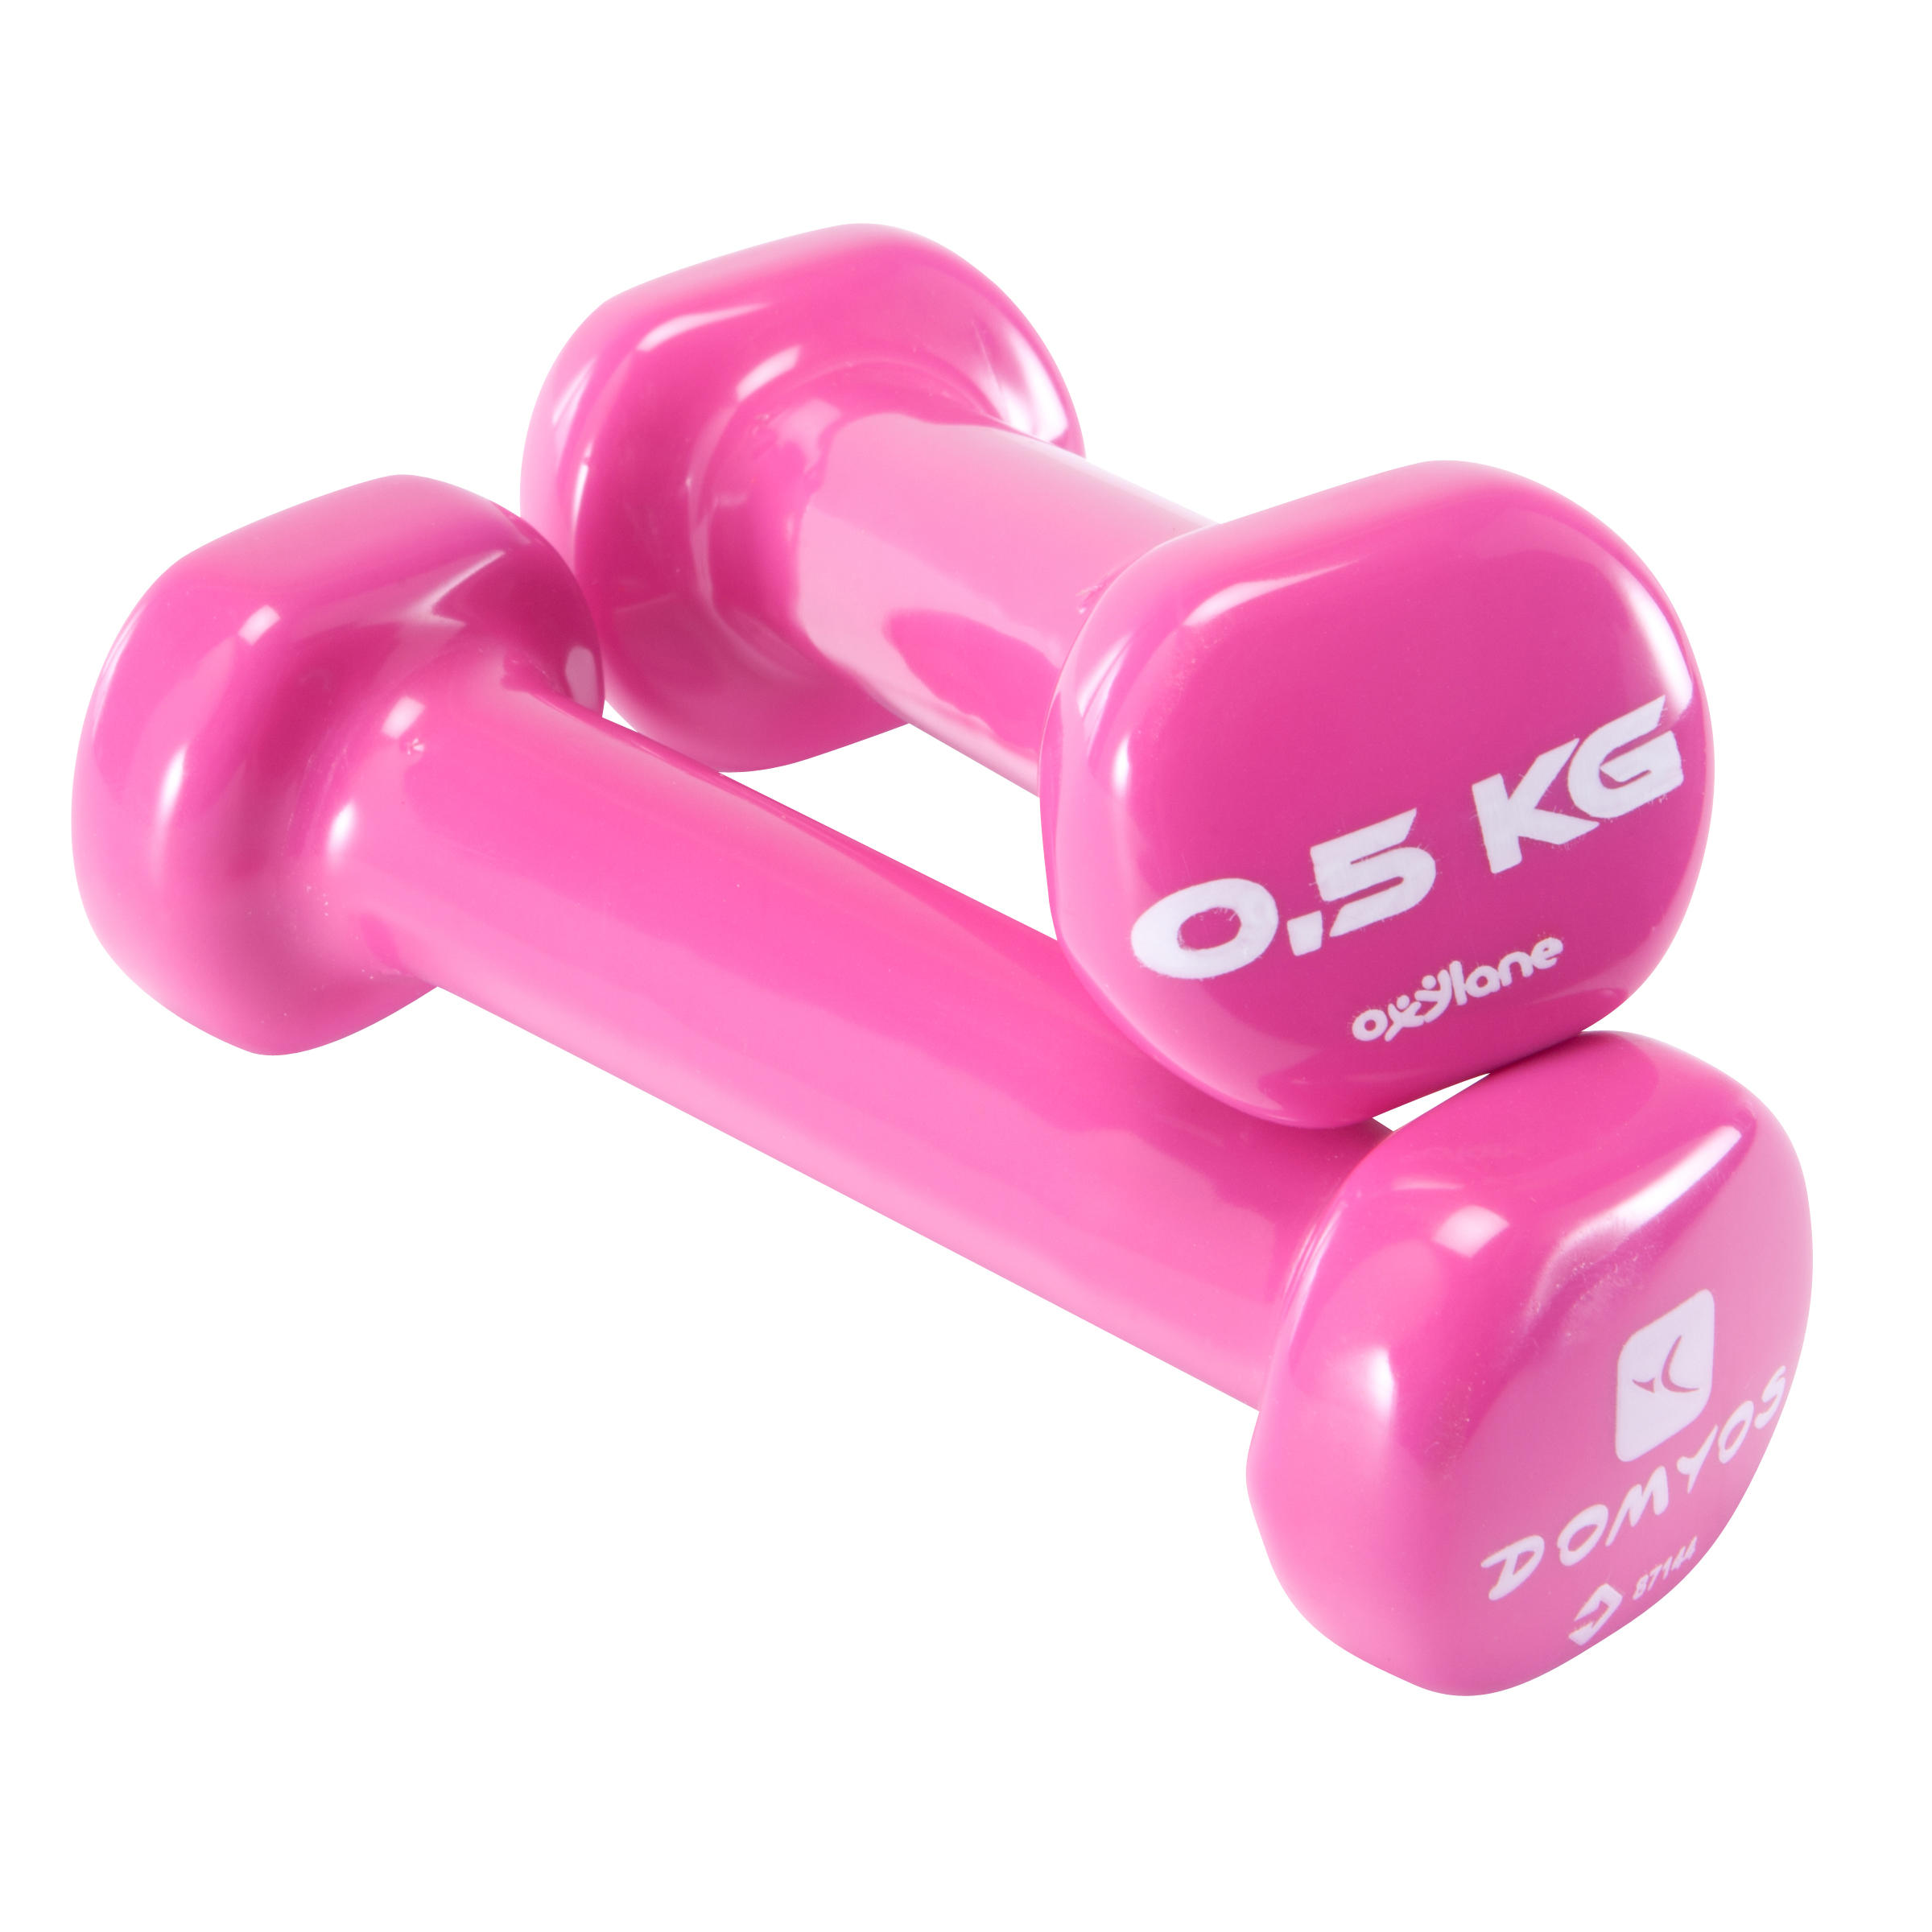 PVC Dumbbells Twin-Pack 0.5 kg